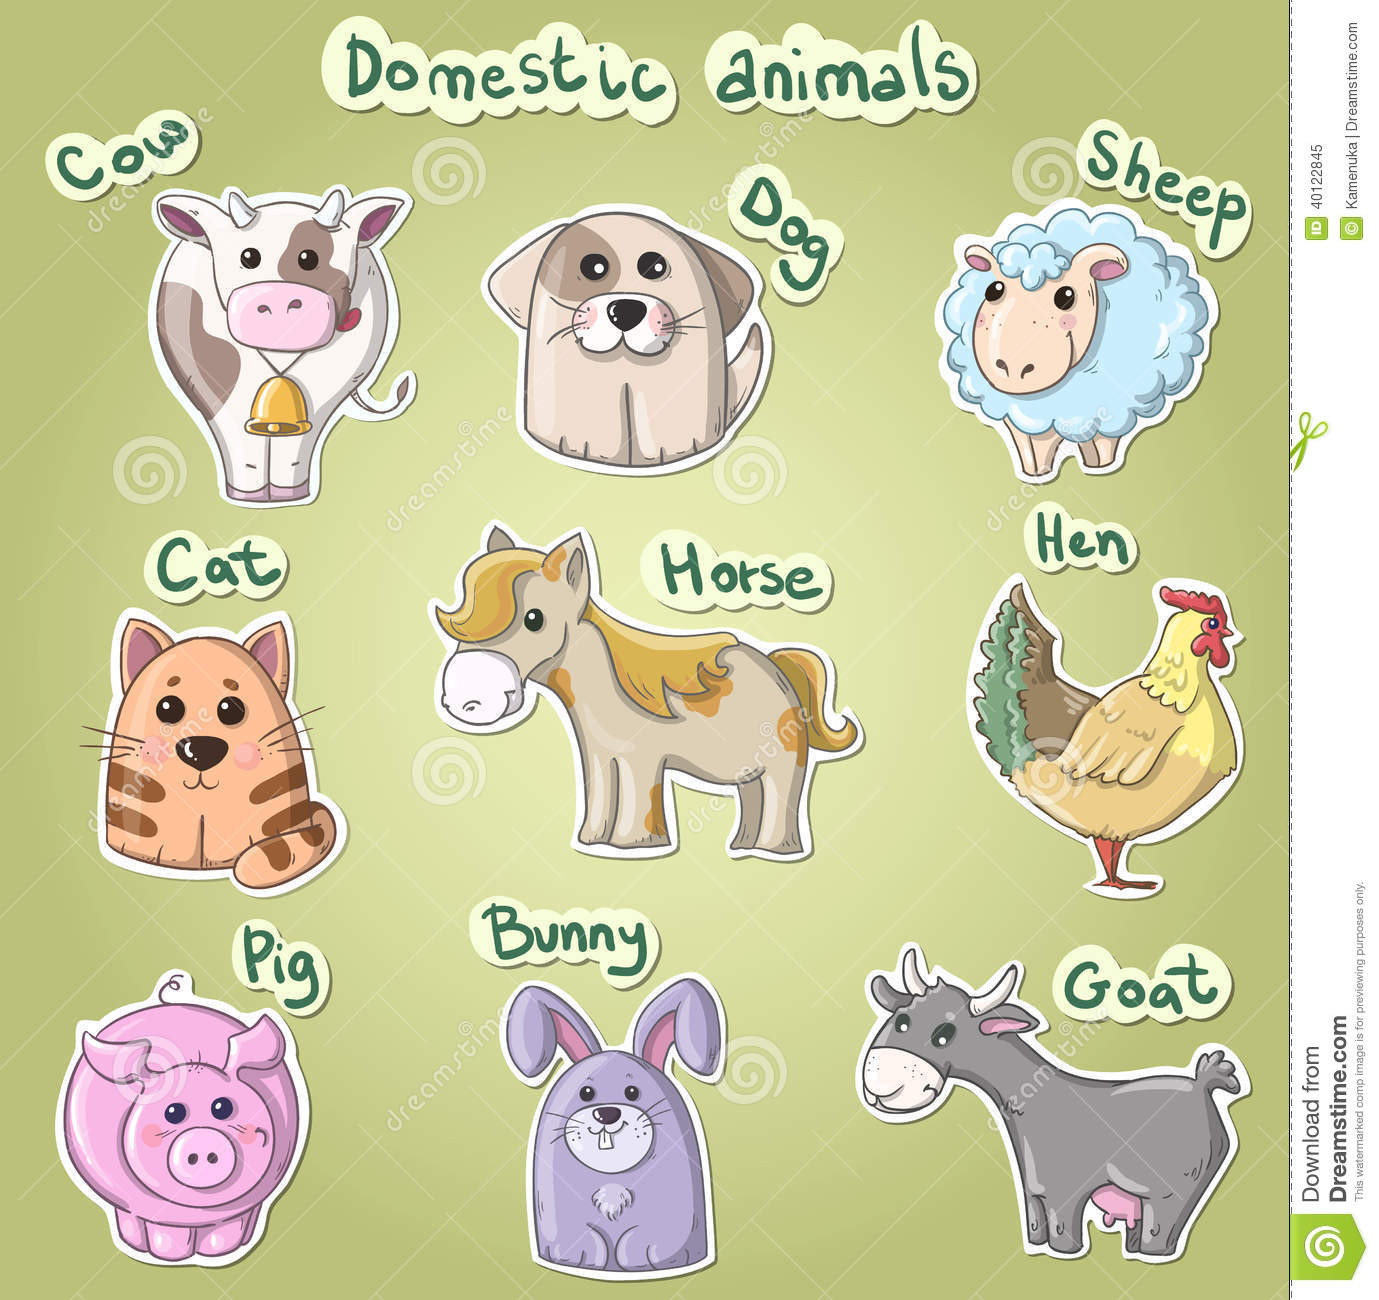 images of domestic animals for kids image information